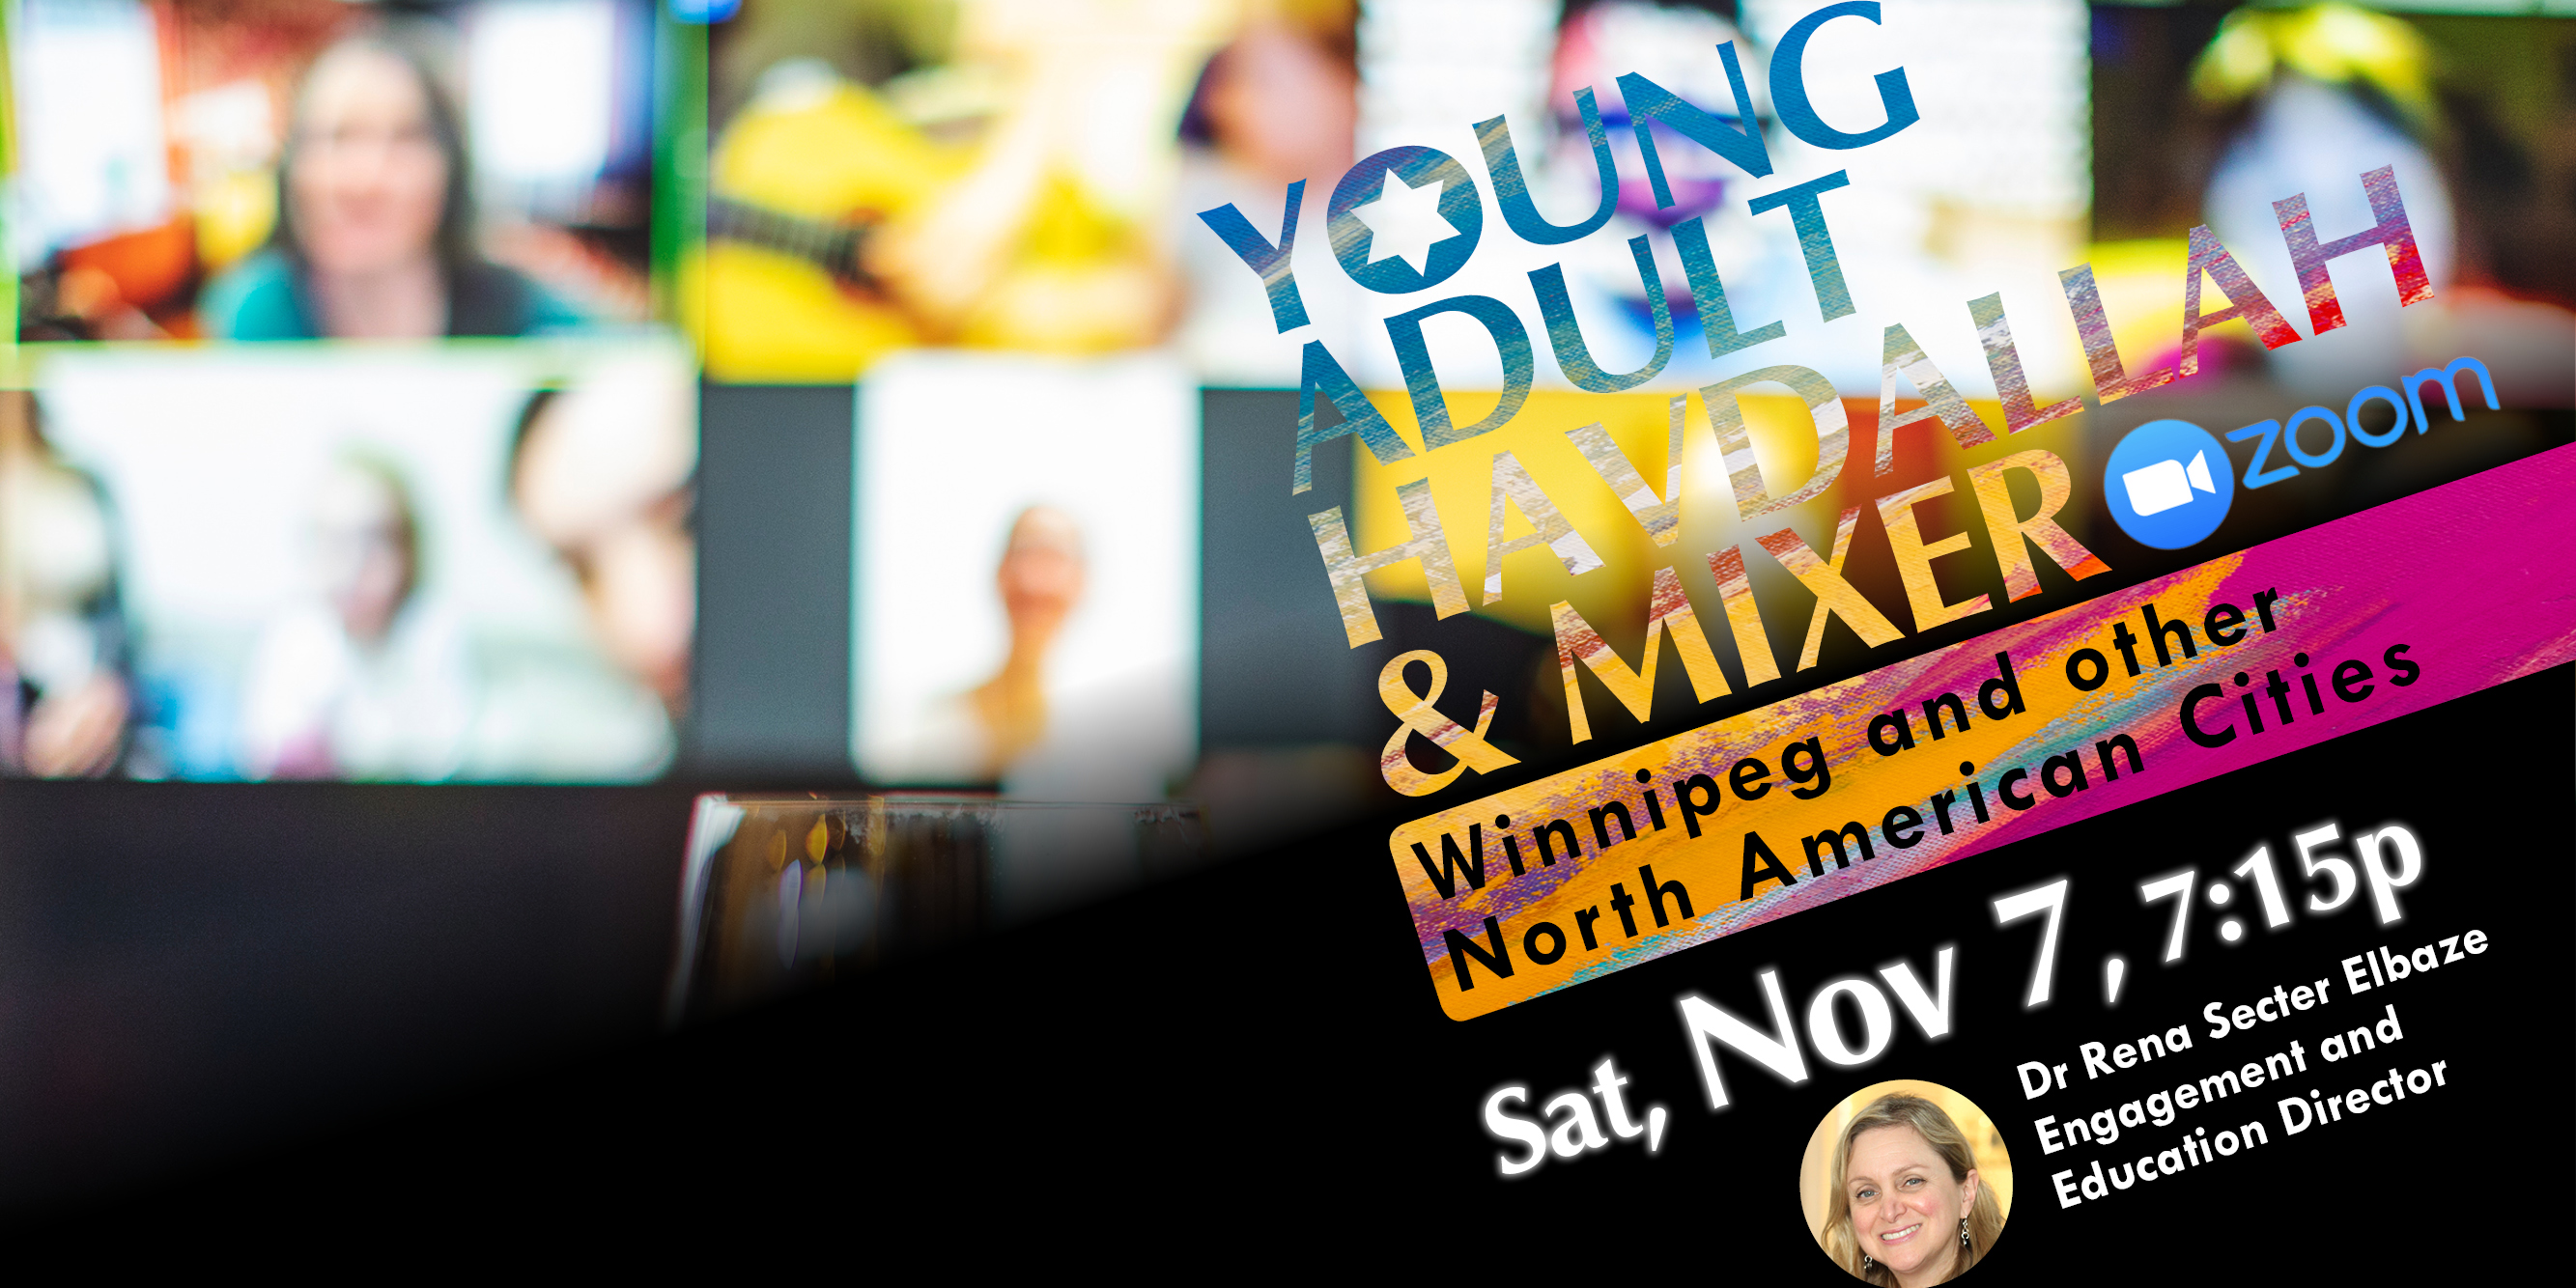 """<a href=""""https://www.szwinnipeg.ca/event/2020-11-07-YoungAdultMixer""""                                     target="""""""">                                                                 <span class=""""slider_title"""">                                     Young Adult Havdallah and Mixer (Winnipeg and other North American Cities)                                </span>                                                                 </a>                                                                                                                                                                                       <span class=""""slider_description"""">Join an intimate group of Young Adults from Winnipeg and other North American cities for an uplifting evening. We may be physically apart, but the possibilities offered through our virtual programming know no boundaries!</span>                                                                                     <a href=""""https://www.szwinnipeg.ca/event/2020-11-07-YoungAdultMixer"""" class=""""slider_link""""                             target="""""""">                             More Information                            </a>"""